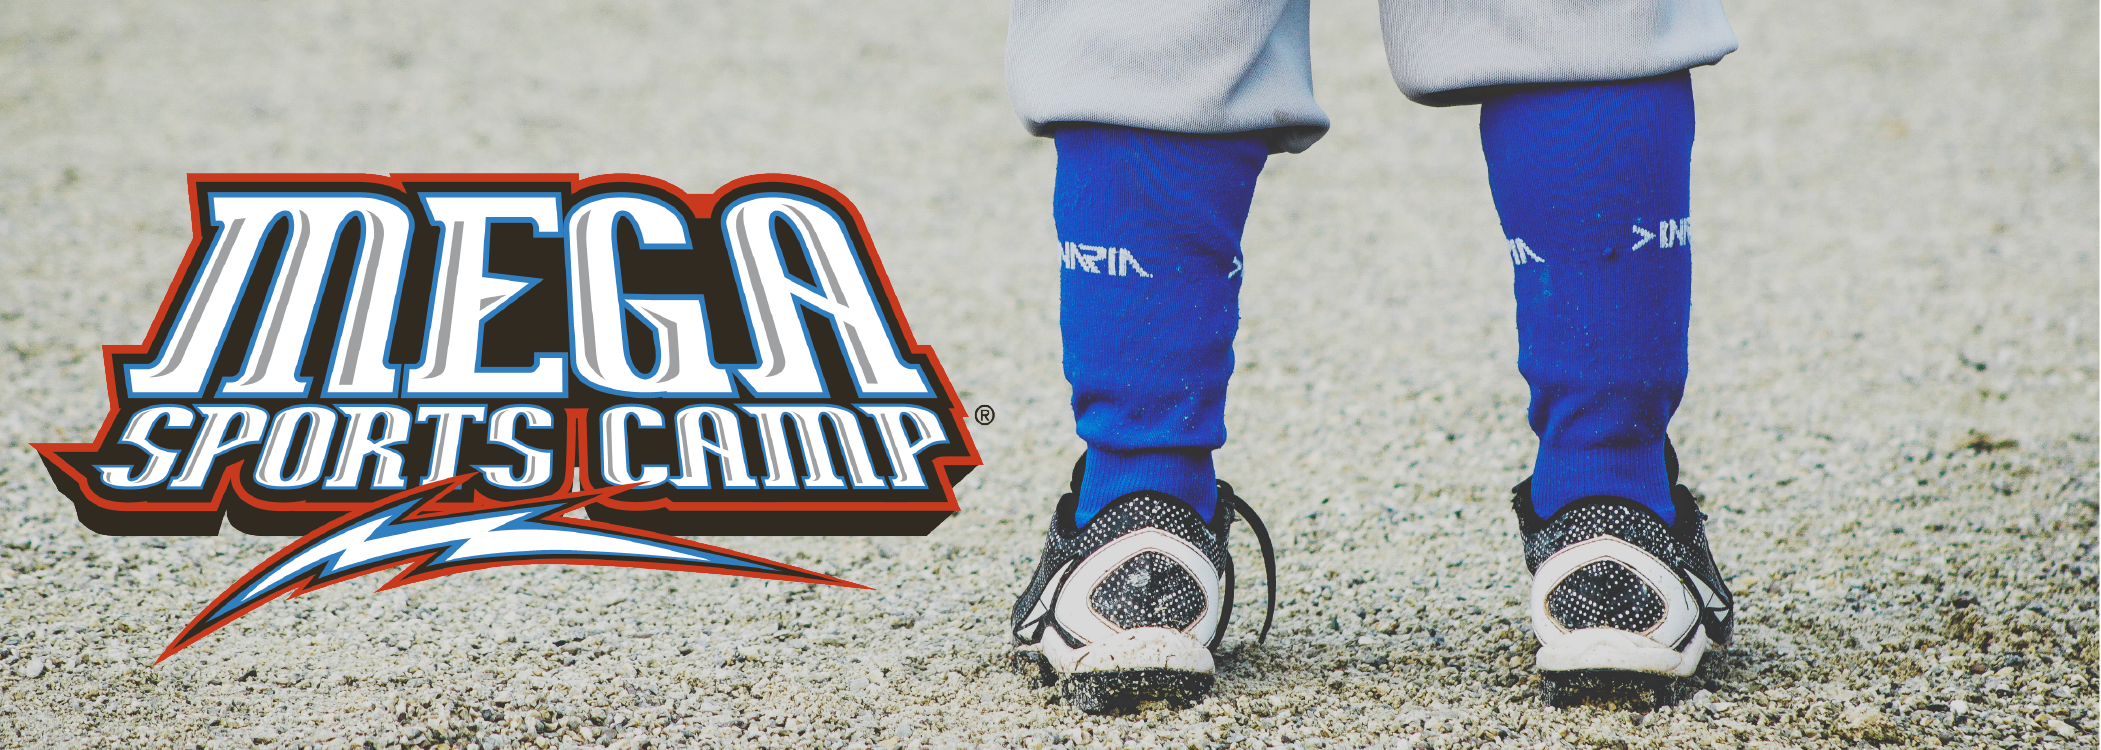 Mega Sports Camp BANNER-04.png